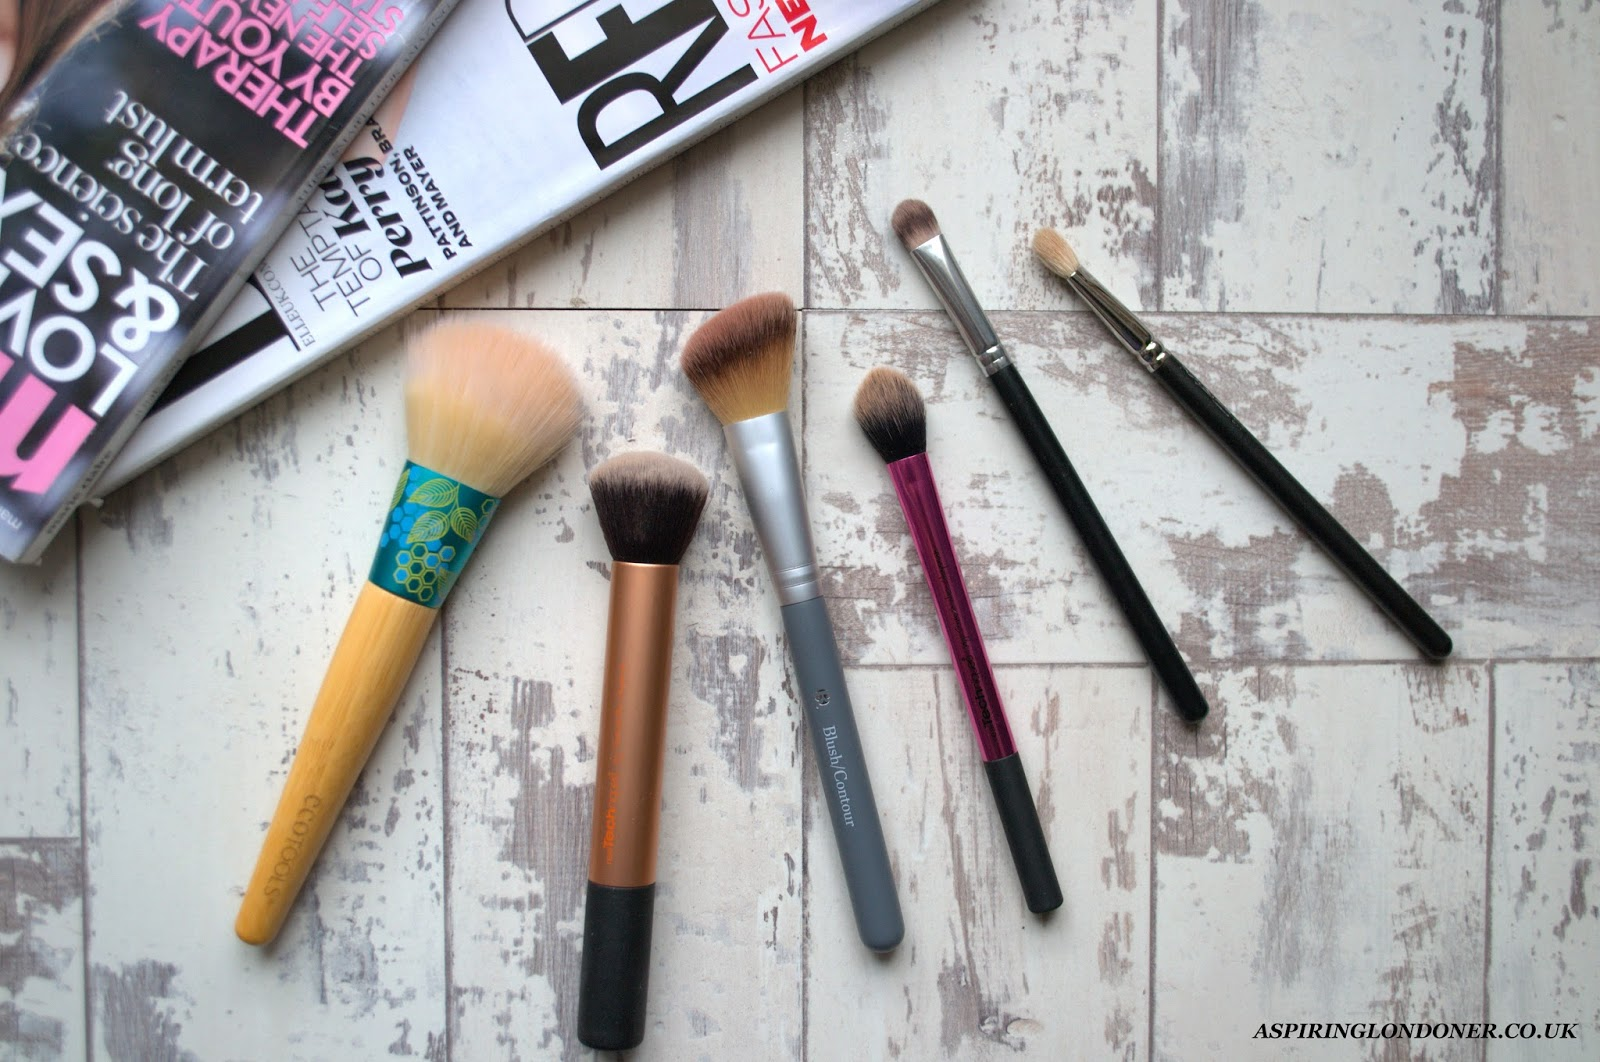 Current Most Used Brushes ft ecoTools, Real Techniques, B Beauty, Crown Brush - Aspiring Londoner